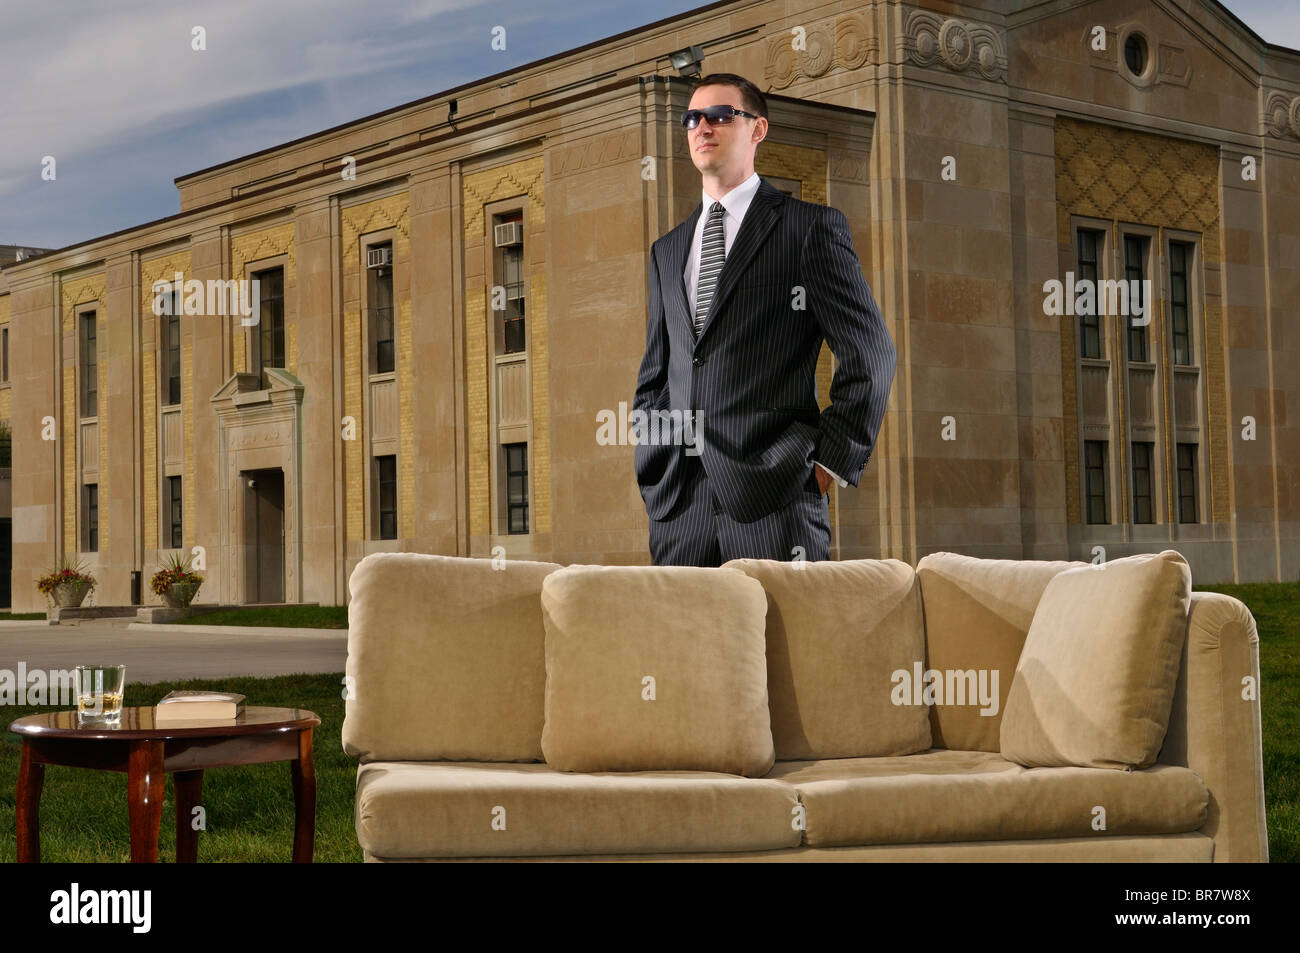 Wealthy young man in suit standing behind a couch and table on the lawn at an art deco mansion - Stock Image